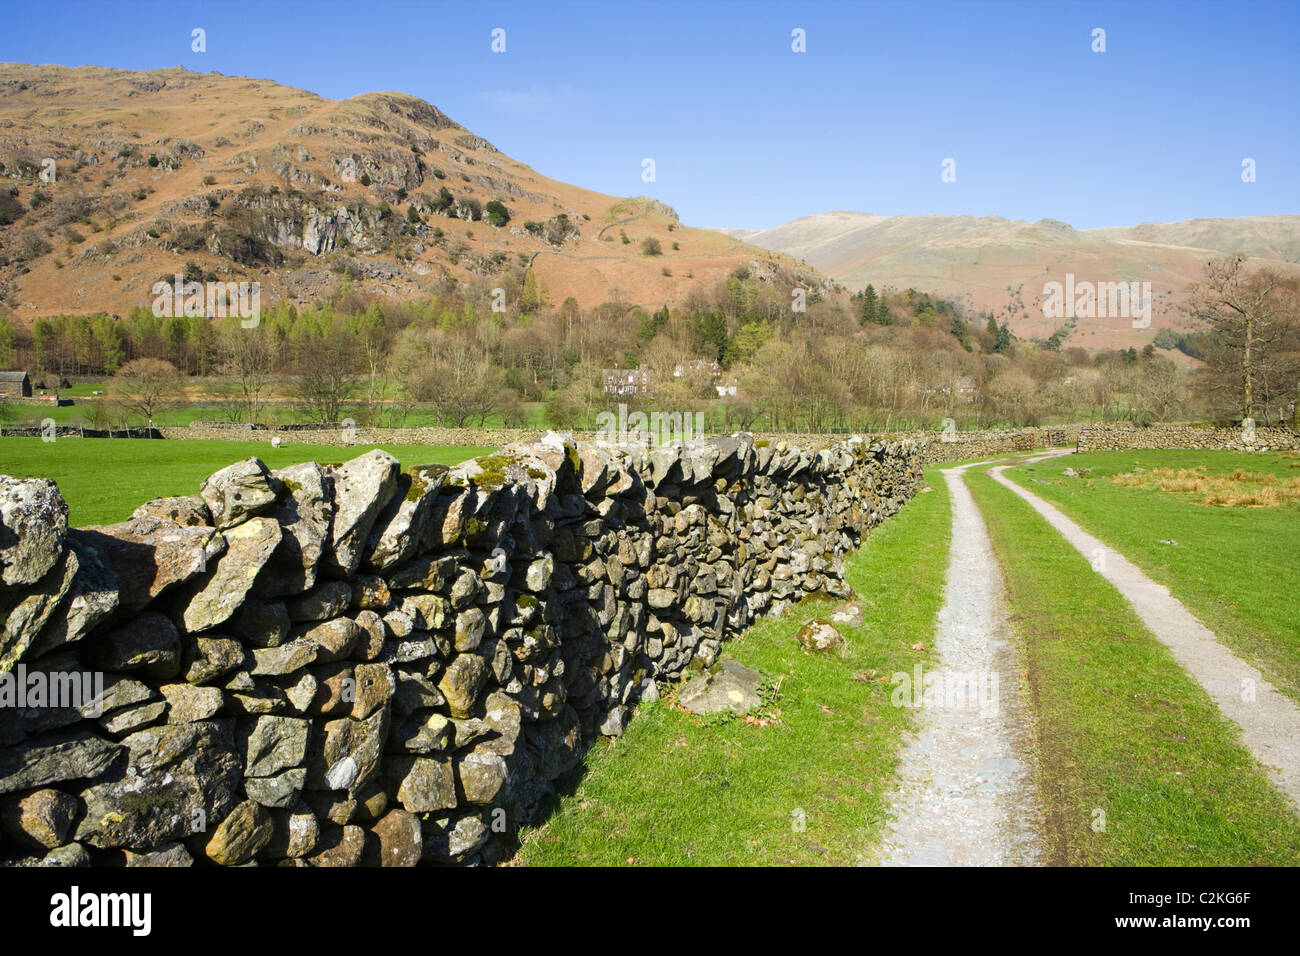 Track und Trockenmauern Wand, Grasmere, Nationalpark Lake District, Cumbria, UK Stockbild